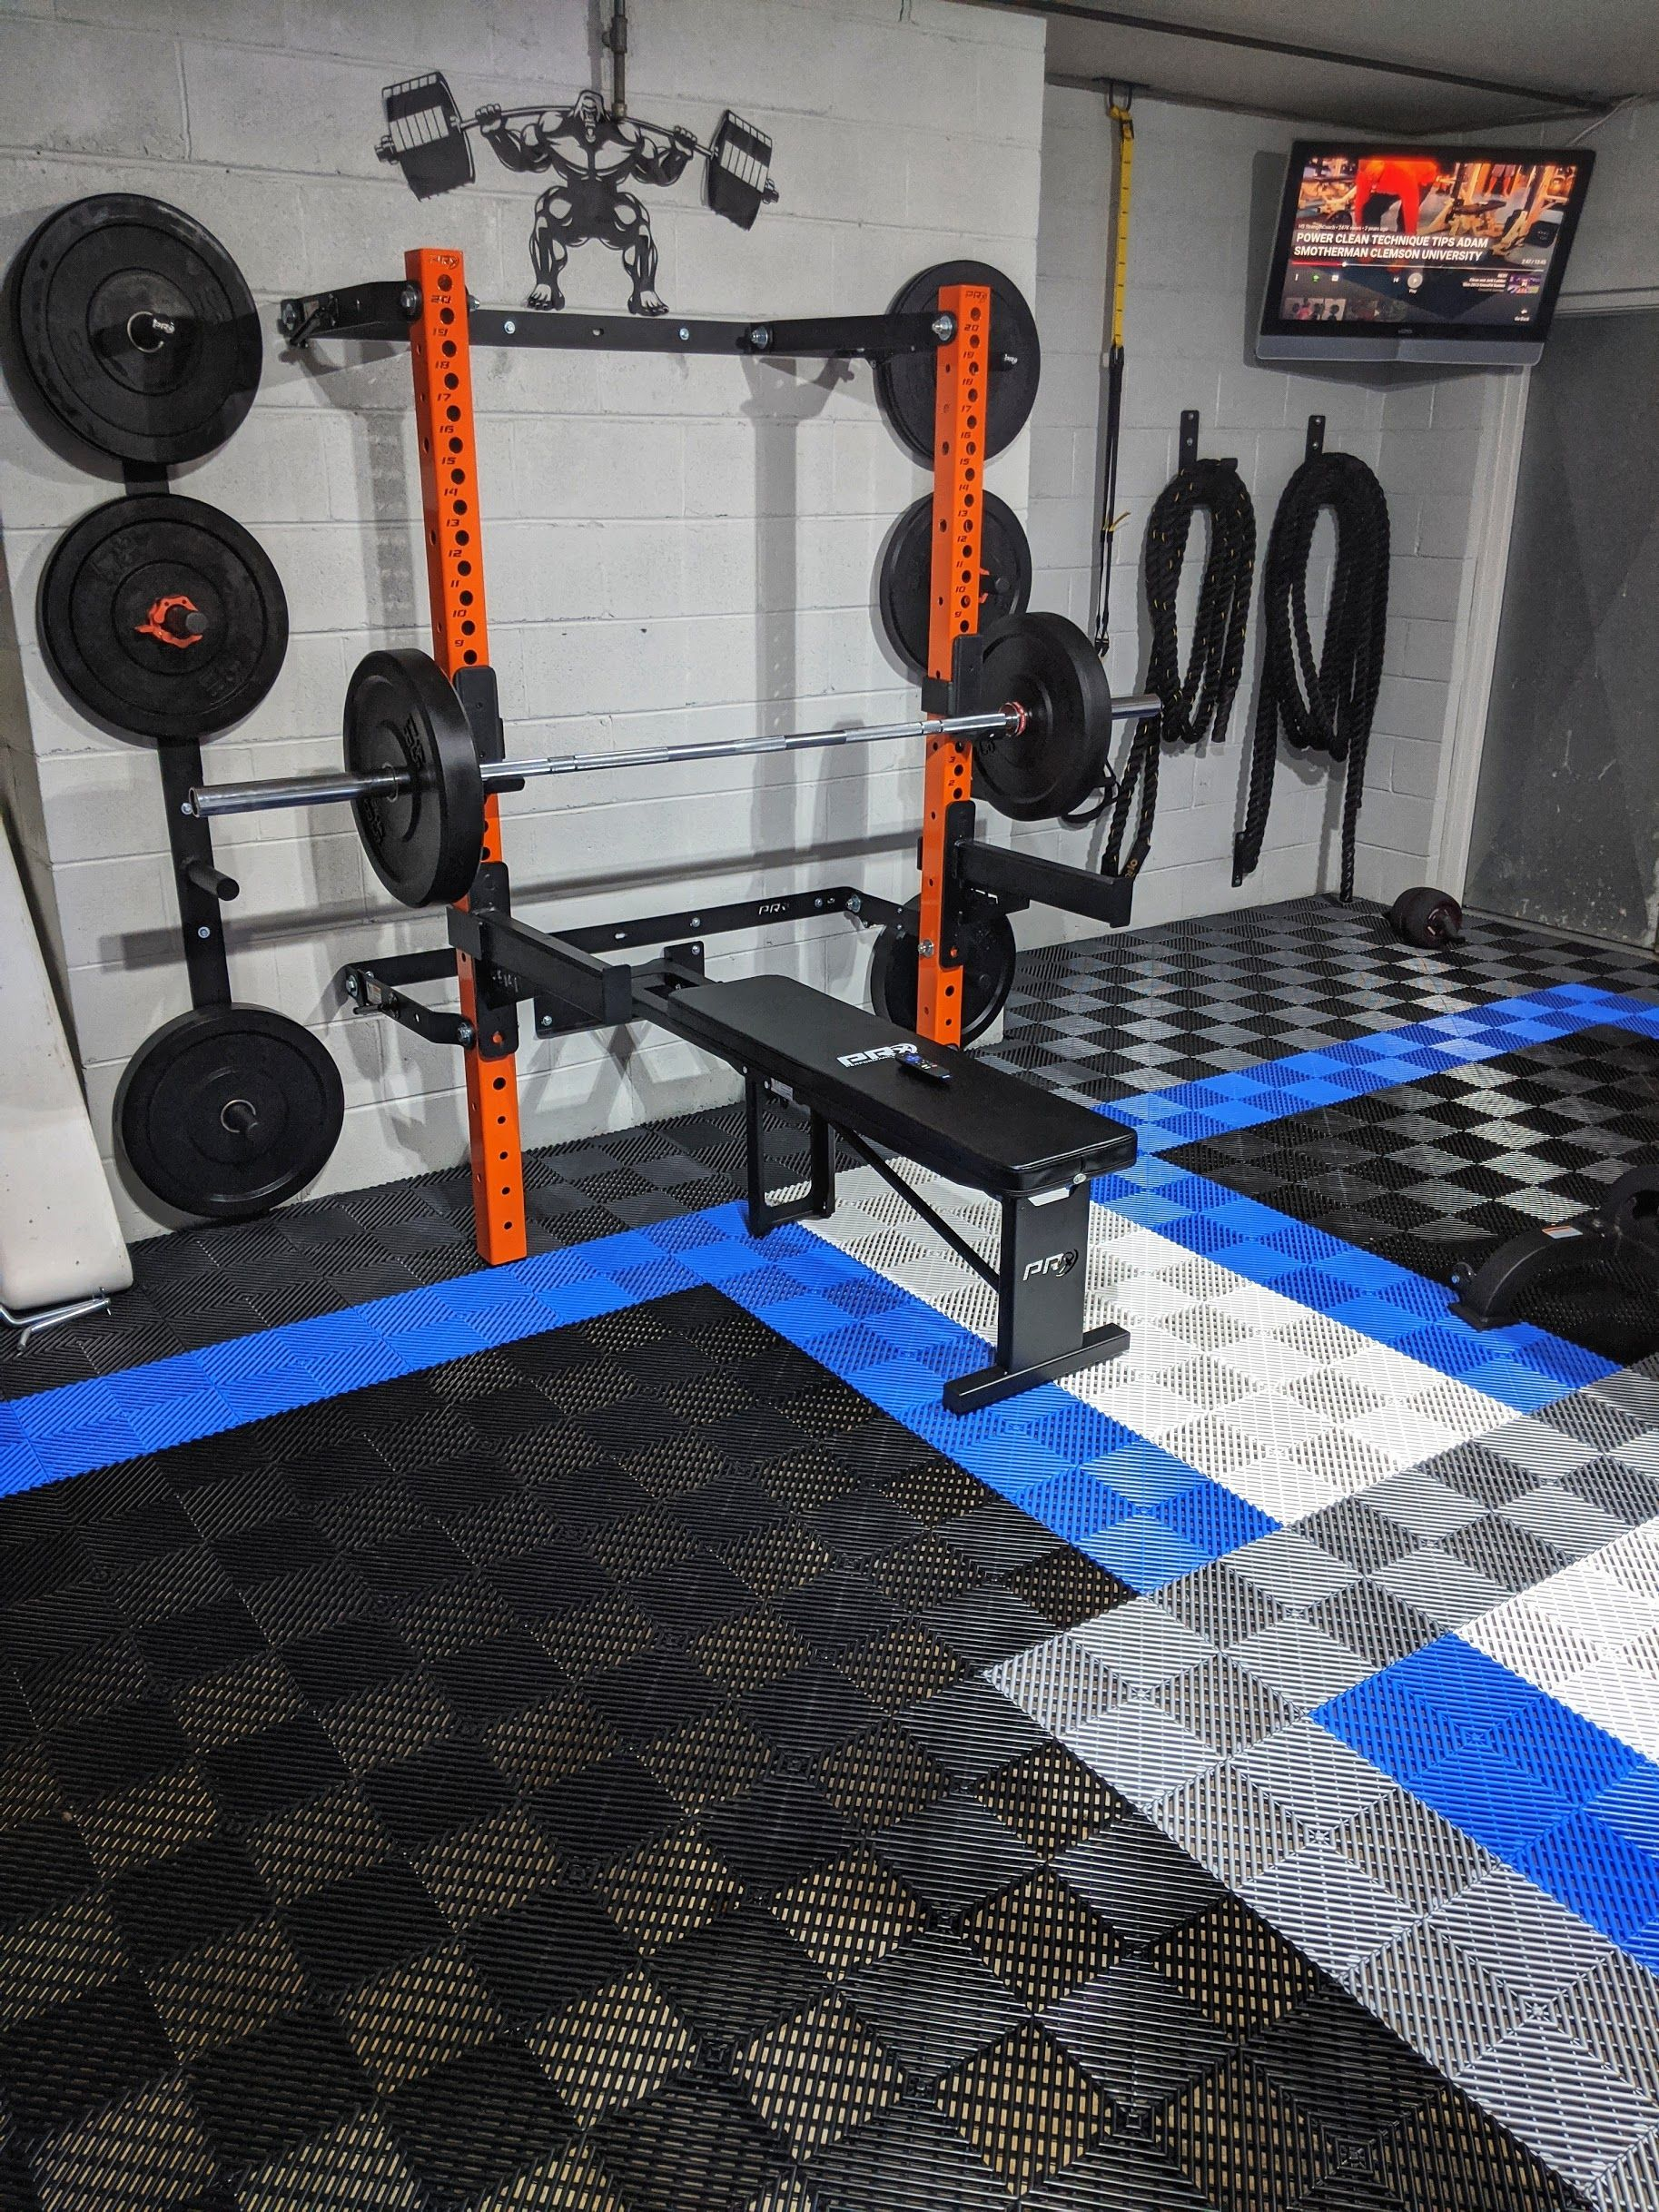 Prx Performance Lift Big In Small Spaces As Seen On Shark Tank Gym Room At Home Gym Room Home Gym Decor